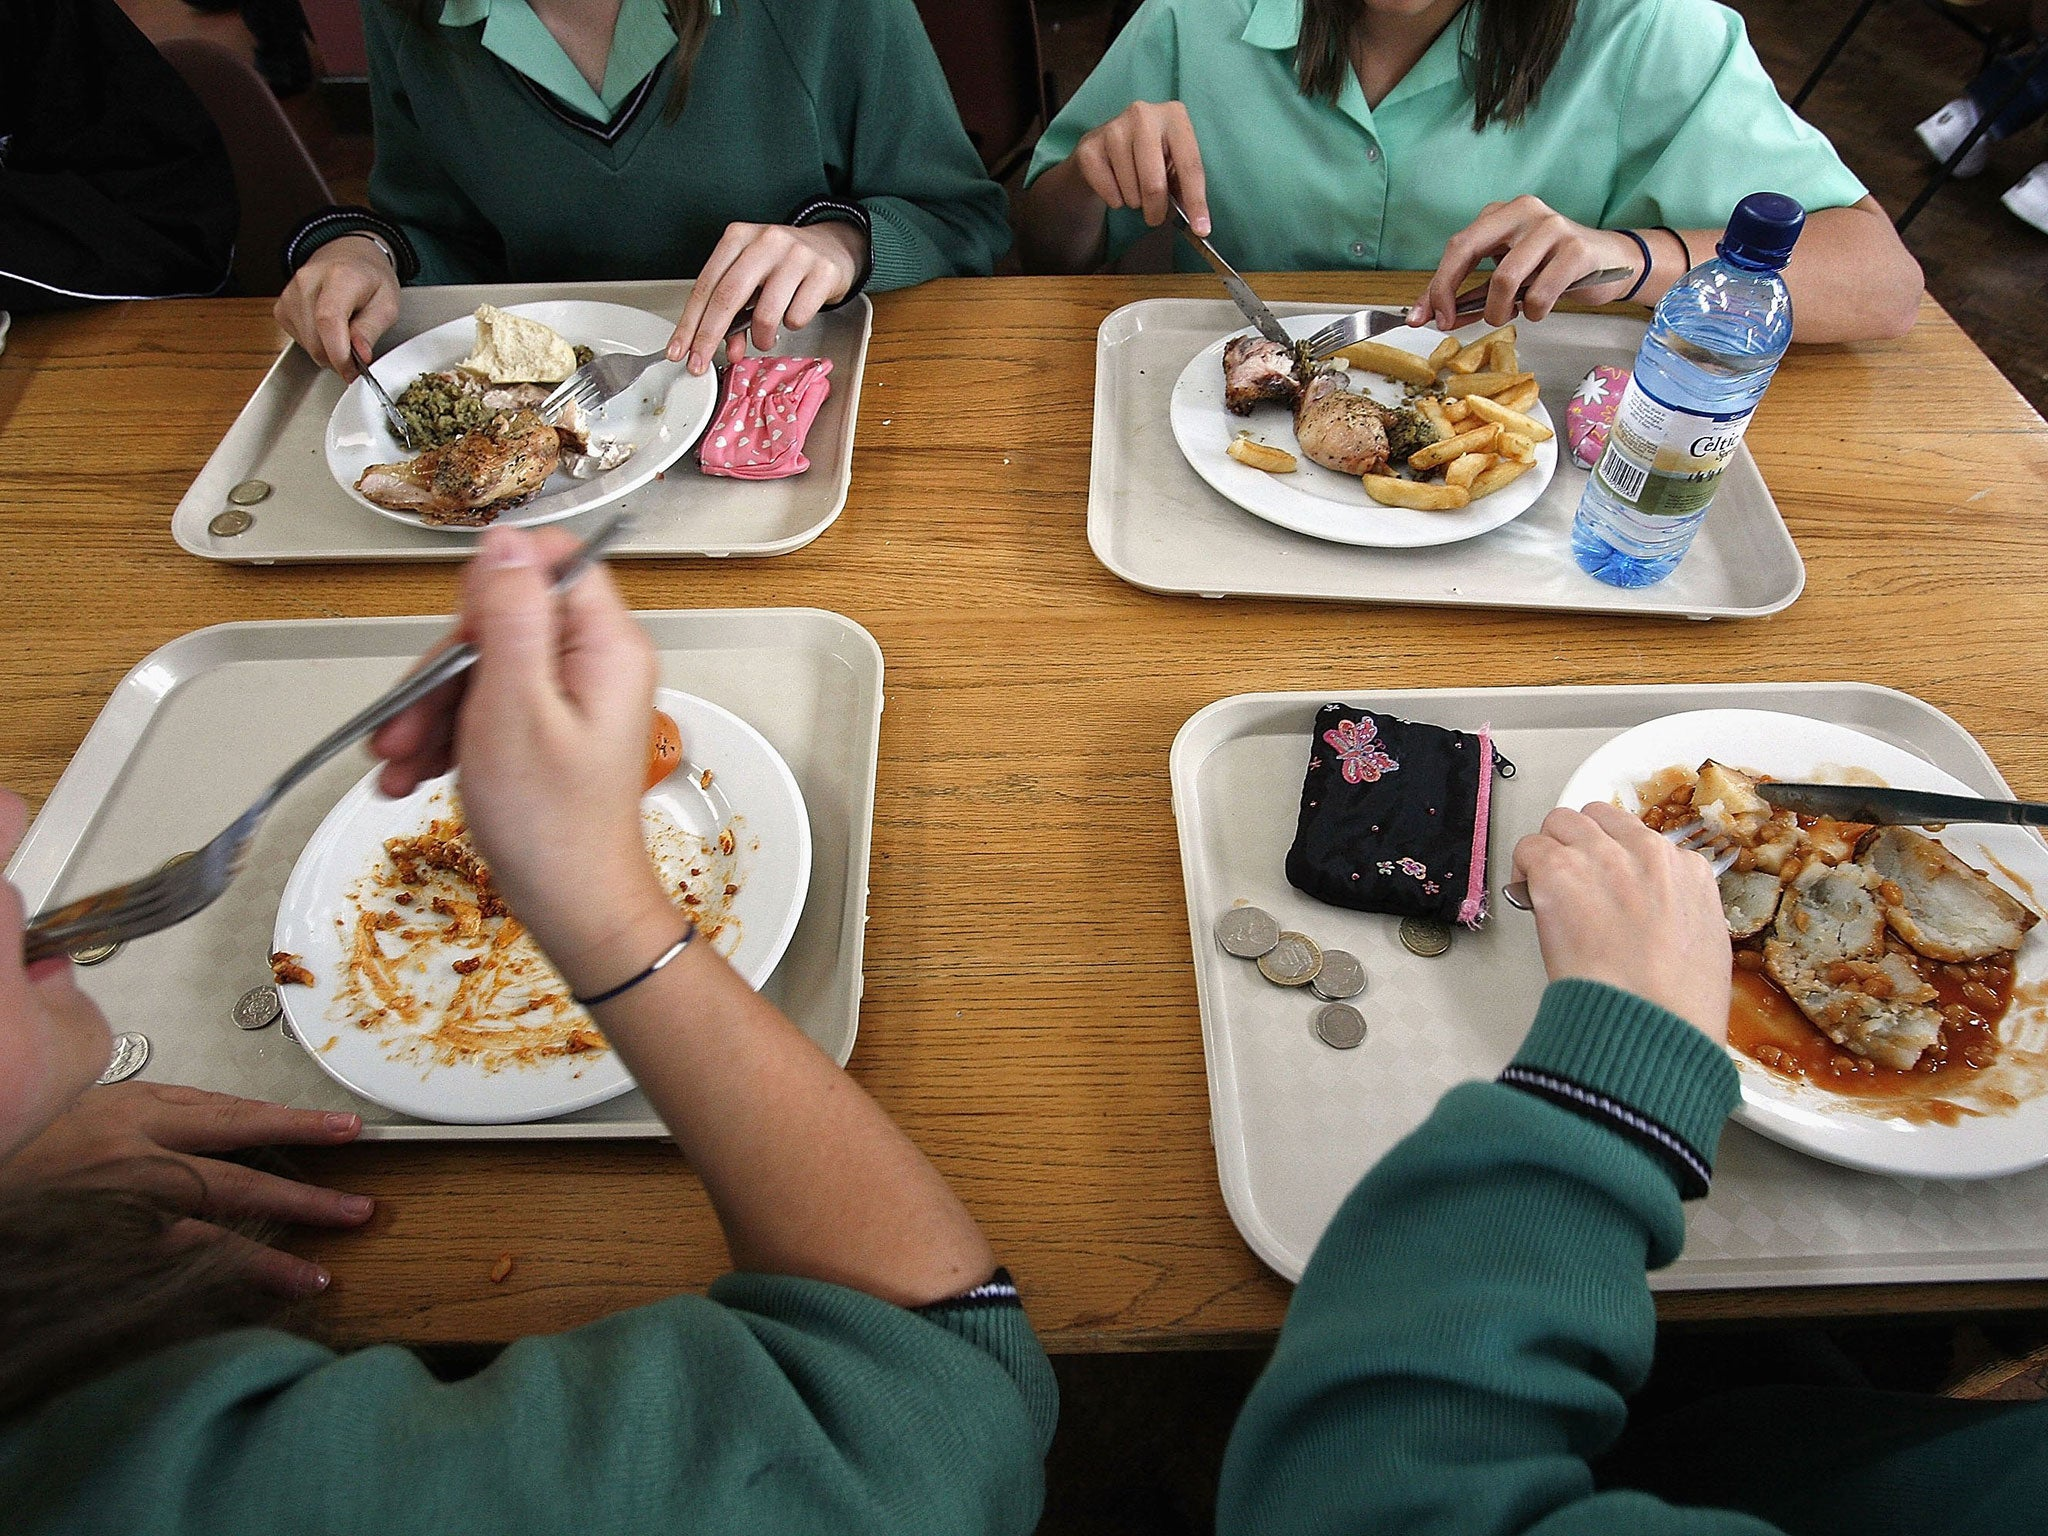 One million children living in poverty will miss out on free school meals under universal credit plans, charity warns